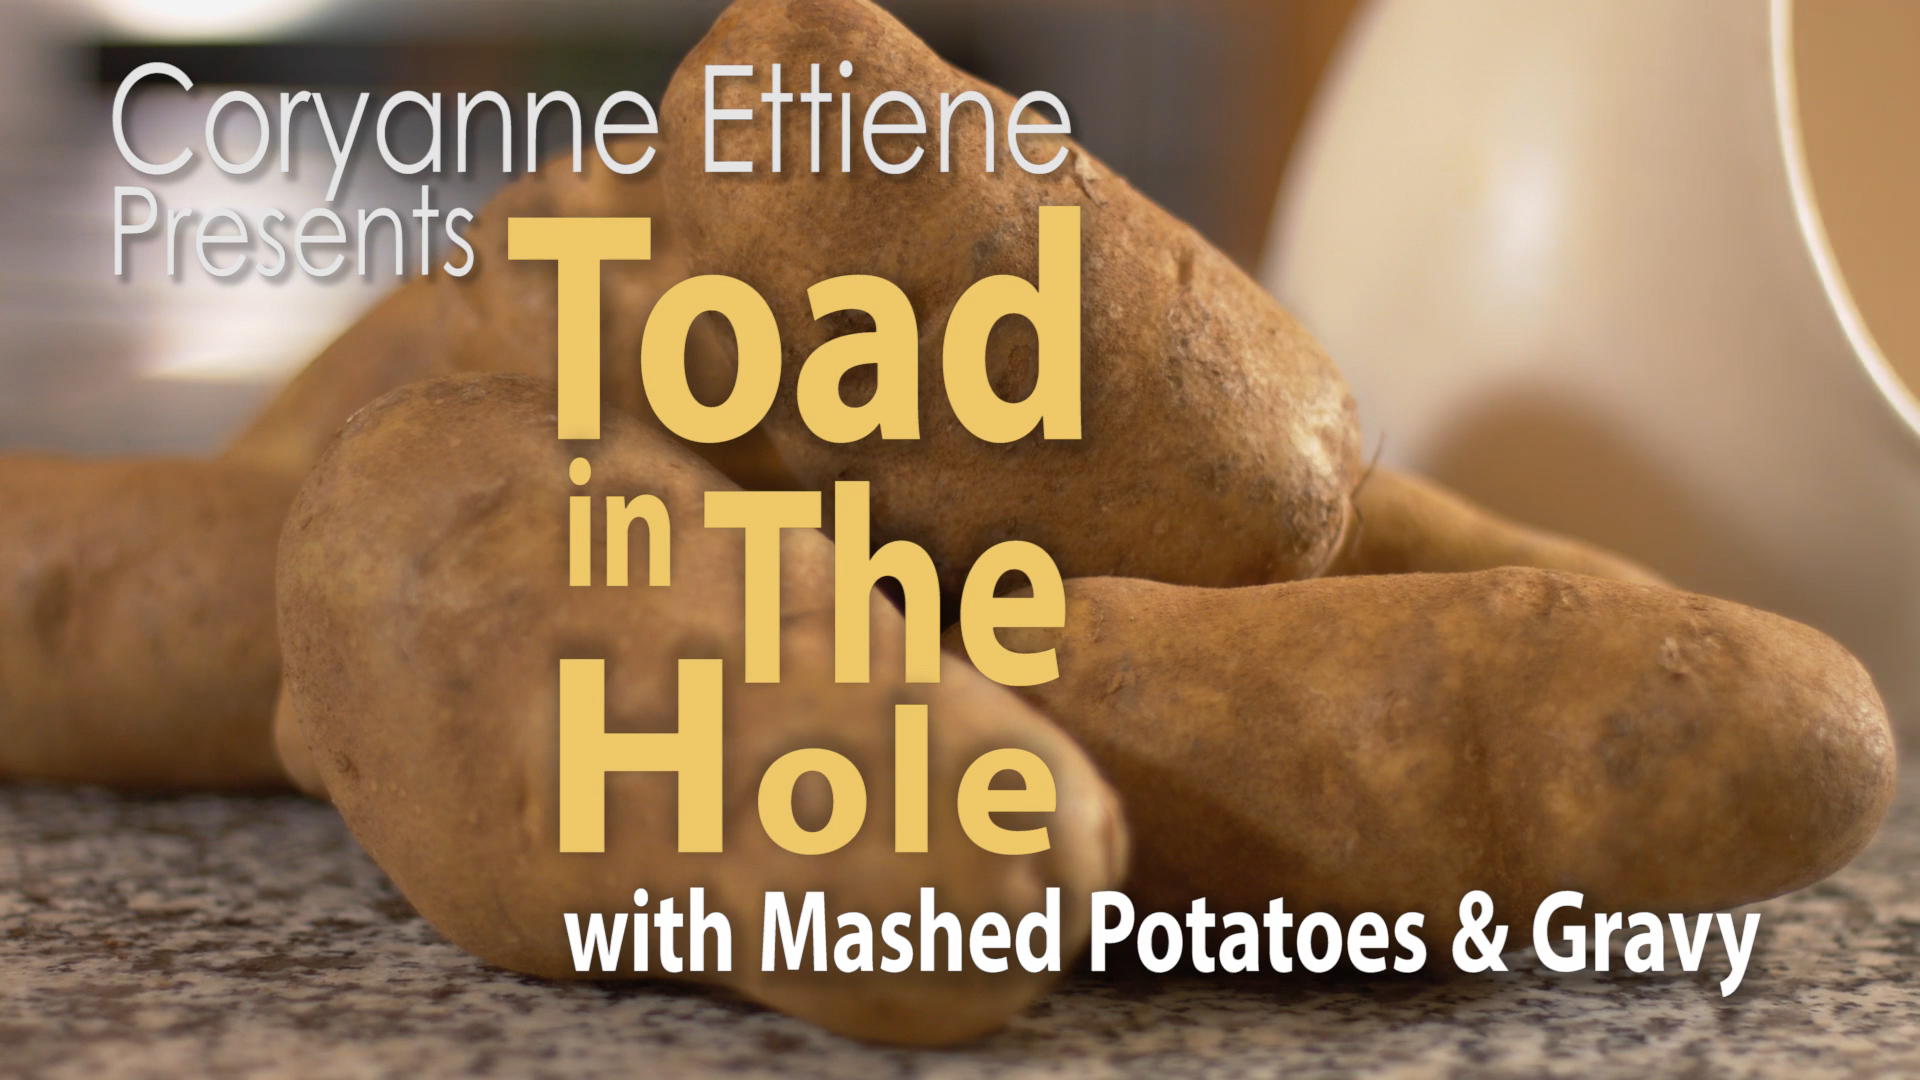 How to Make a Traditional Toad in the Hole